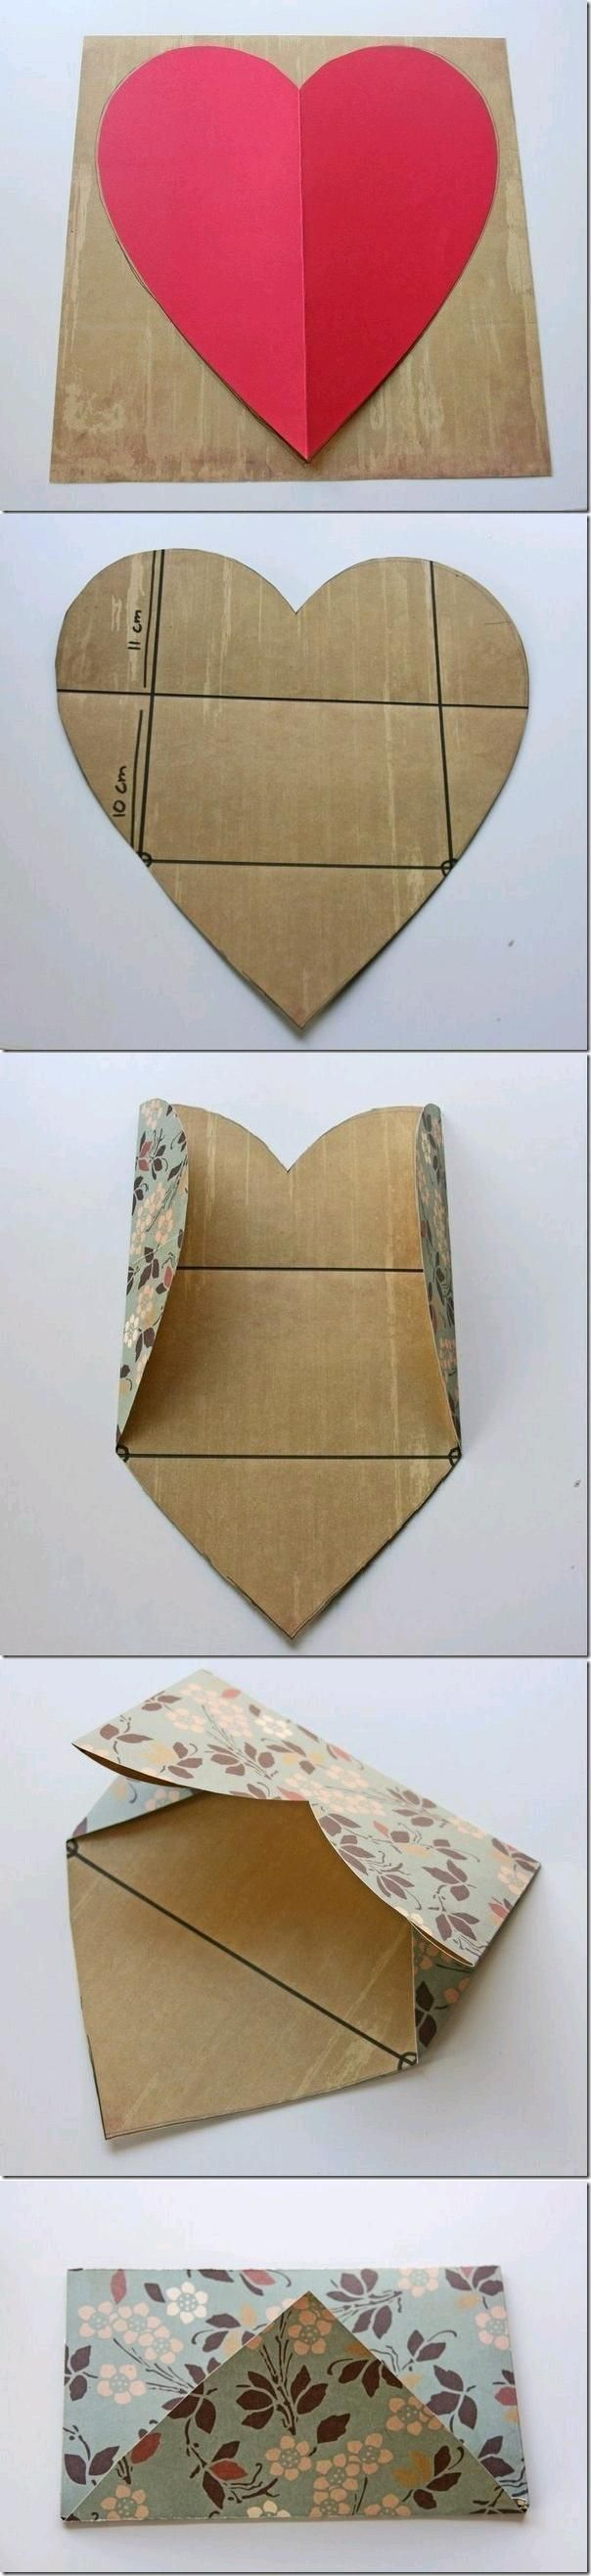 #DIY Envelope from a Heart #crafts